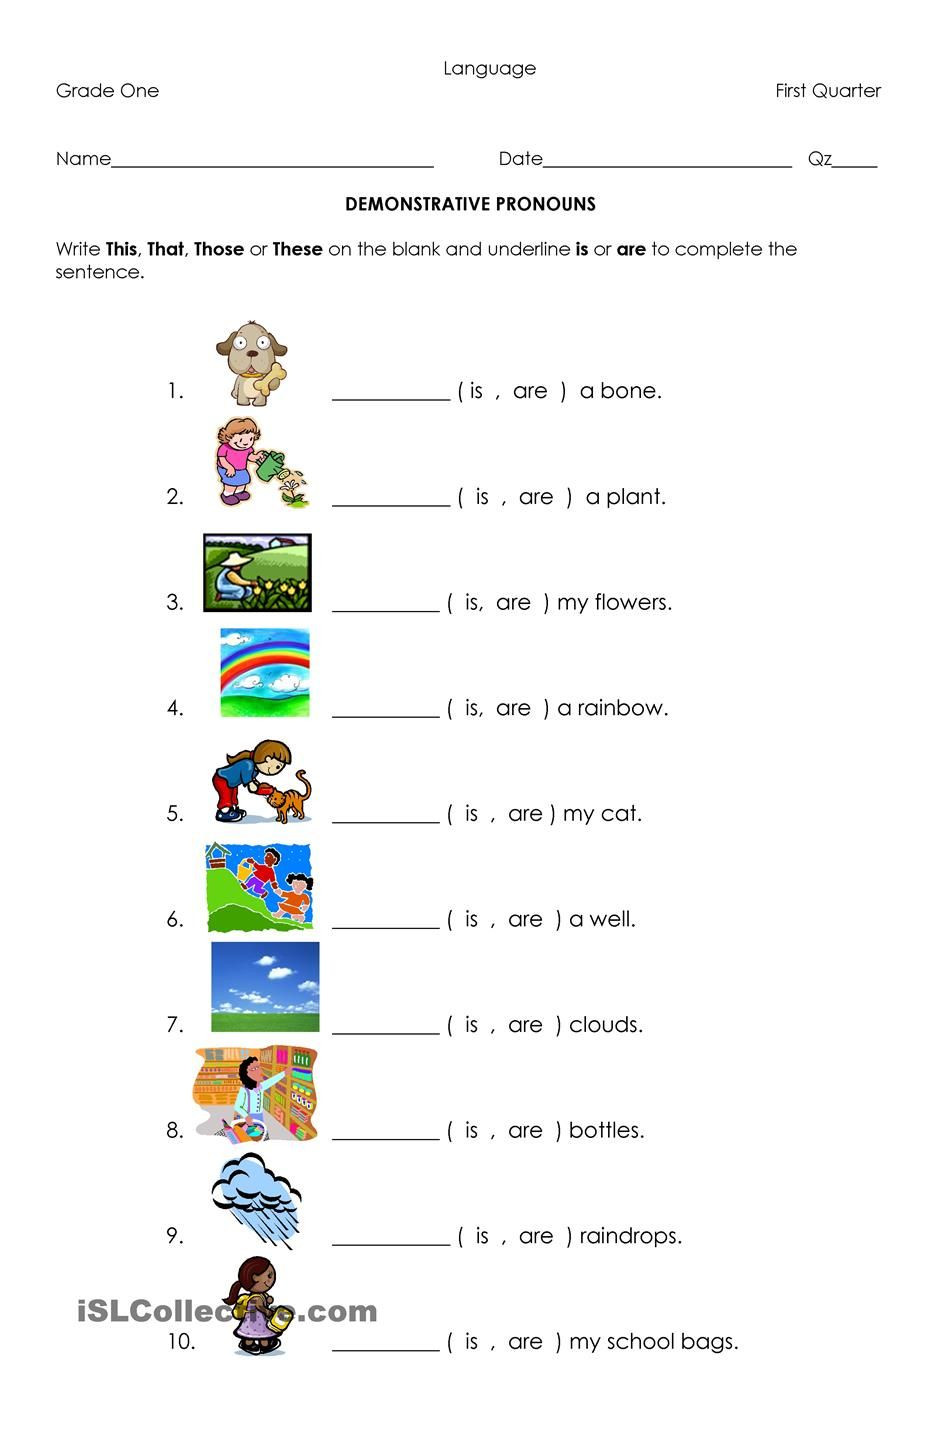 Pronoun Worksheets Second Grade Demonstrative Pronouns